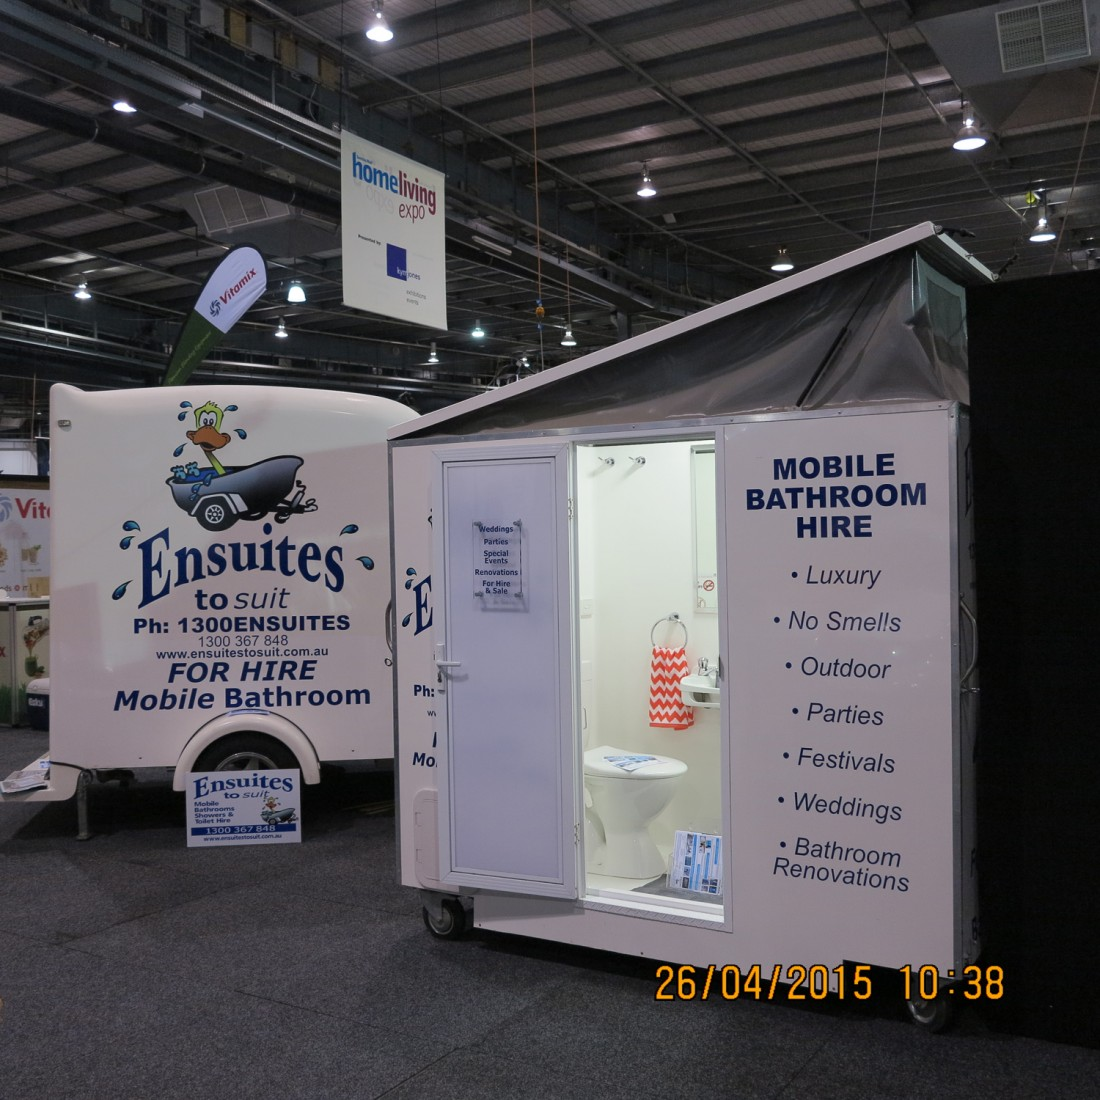 Luxury Bathrooms Brisbane perfect luxury bathrooms and portable showers & toilets for hire